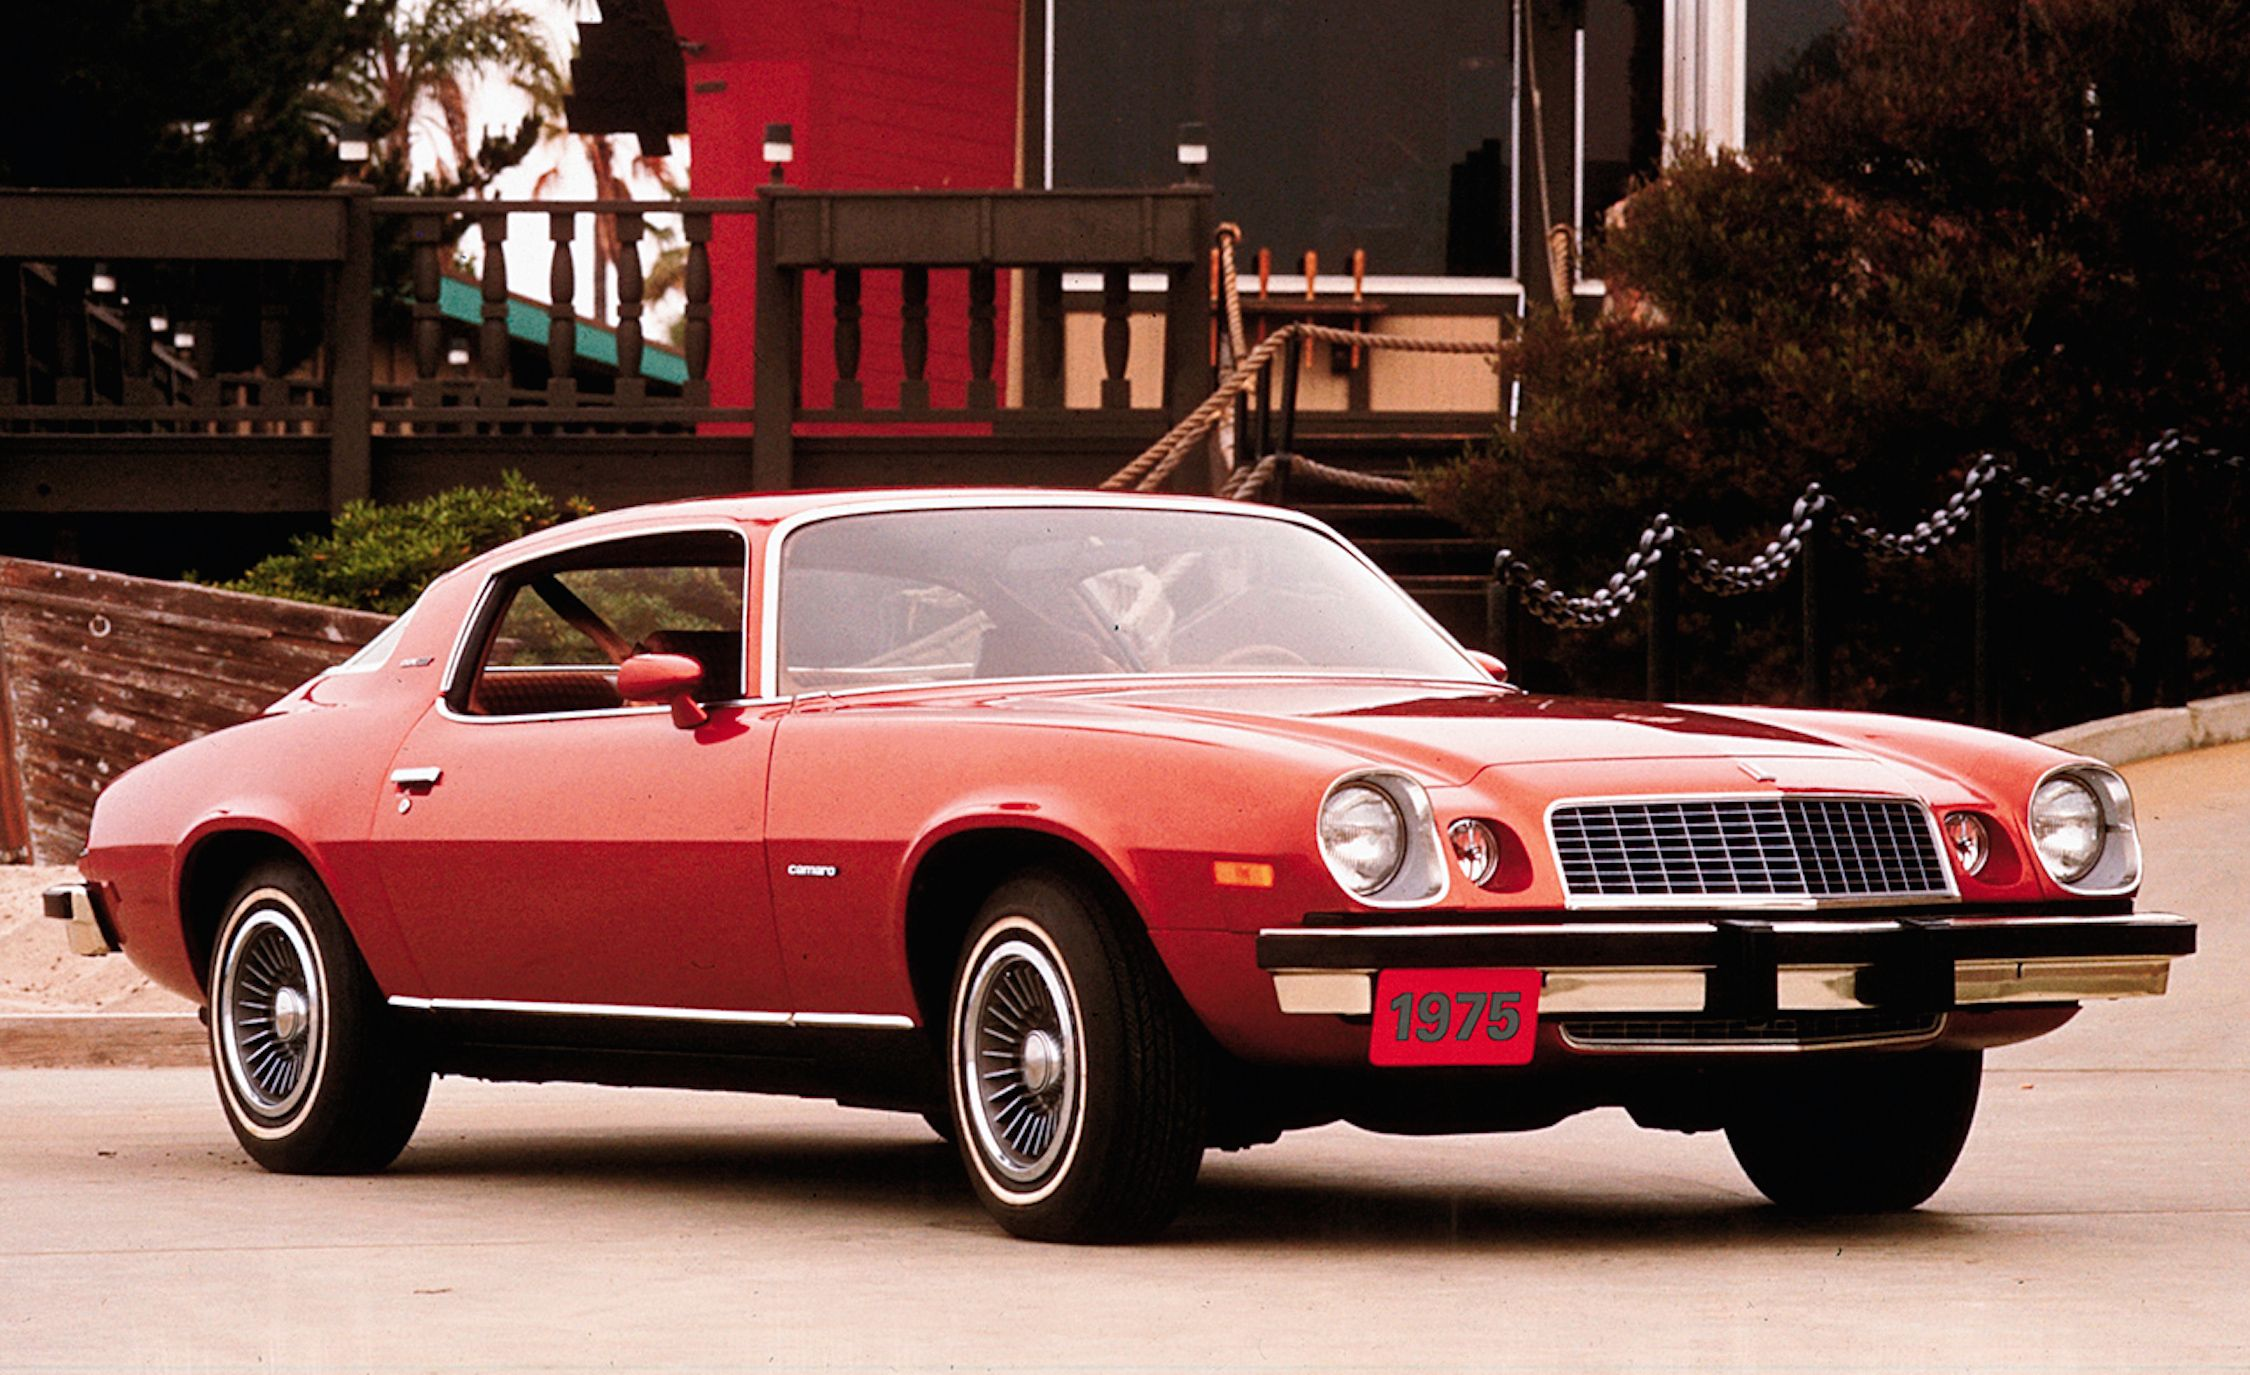 The History Of The Chevrolet Camaro From 1967 To Today